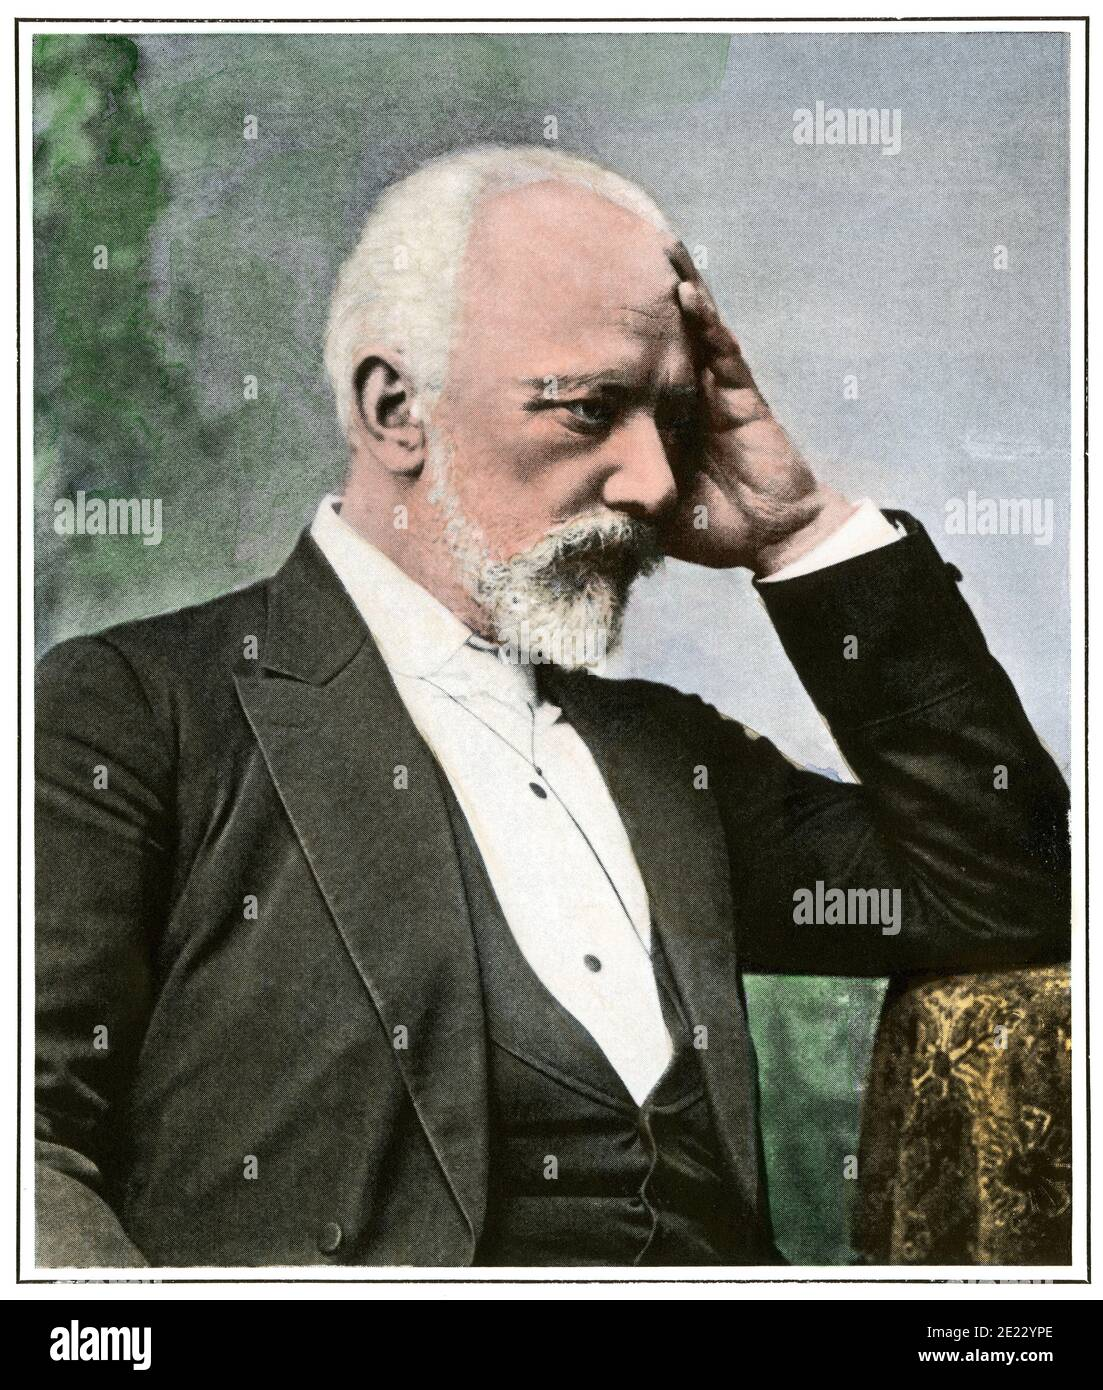 Tchaikovsky at Kharkiv in Ukraine. Hand-colored halftone of a photograph Stock Photo